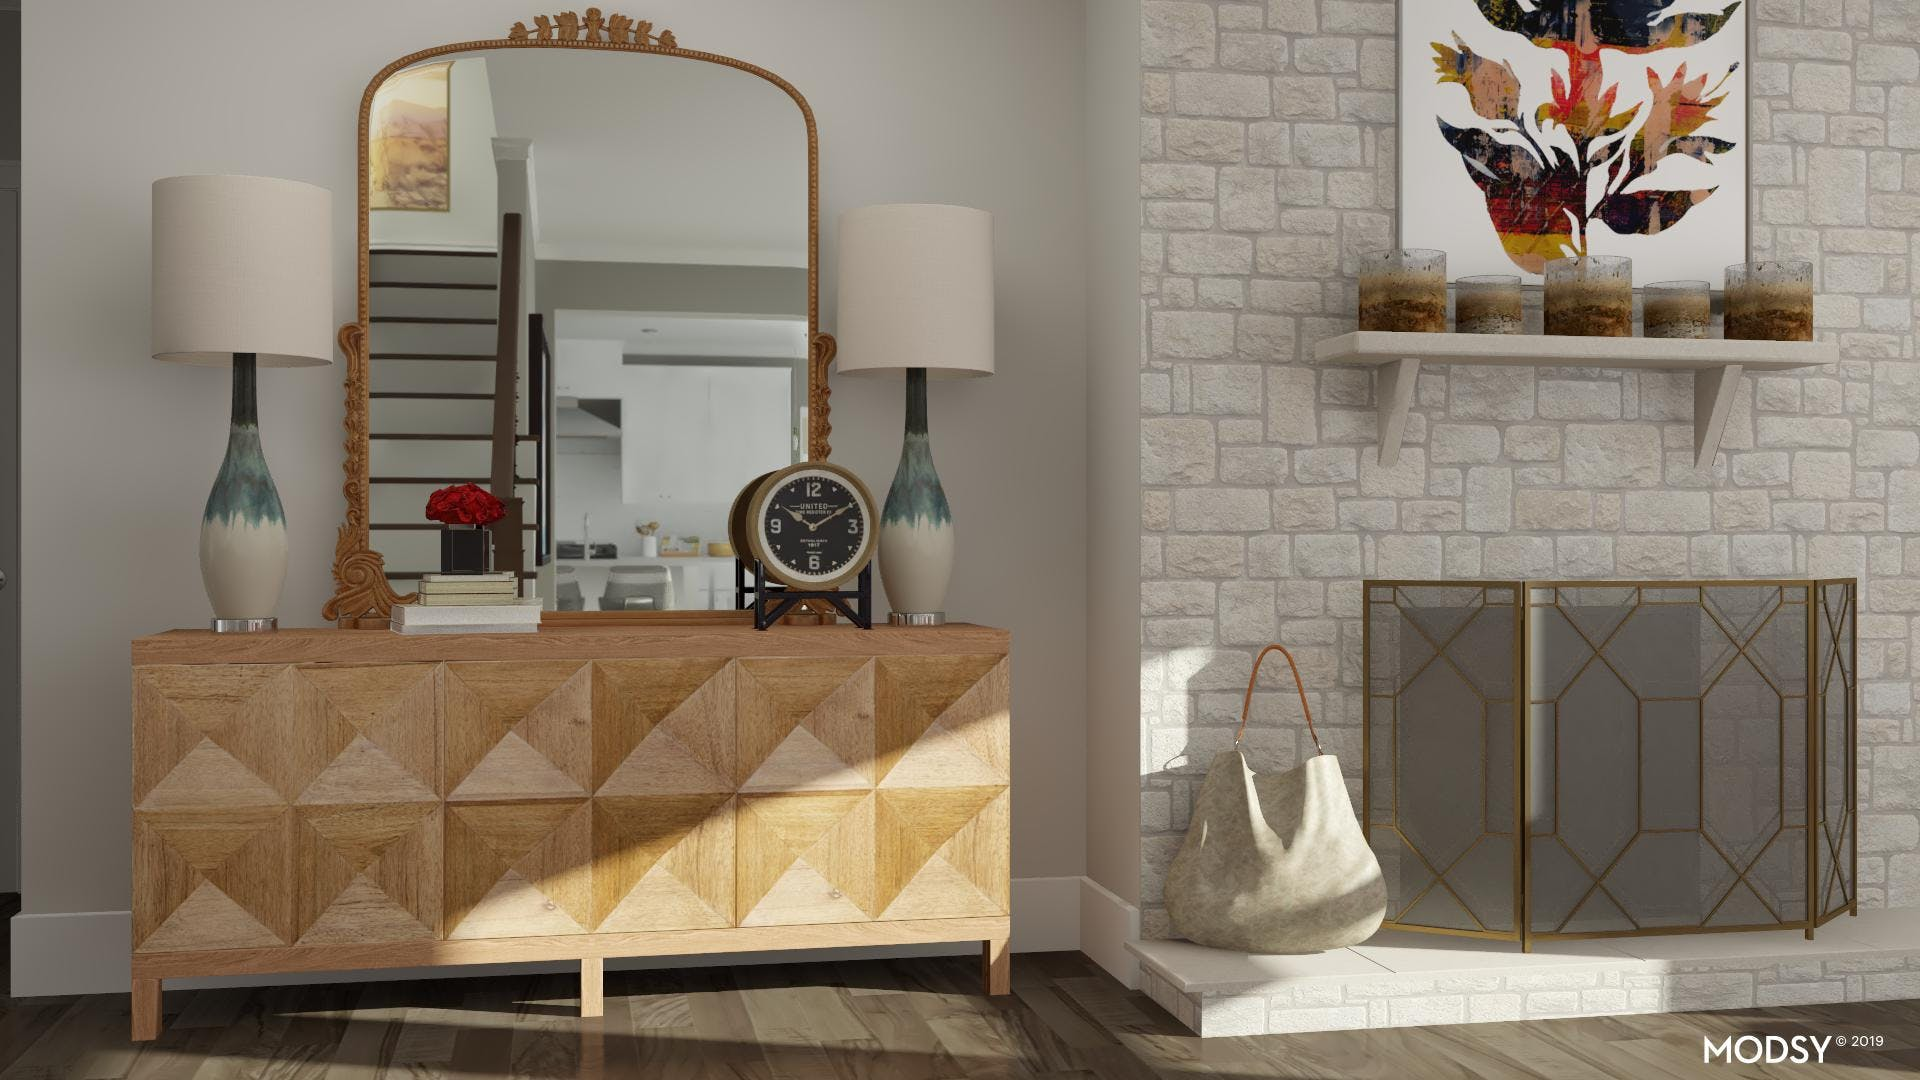 The Statement Piece: Rustic